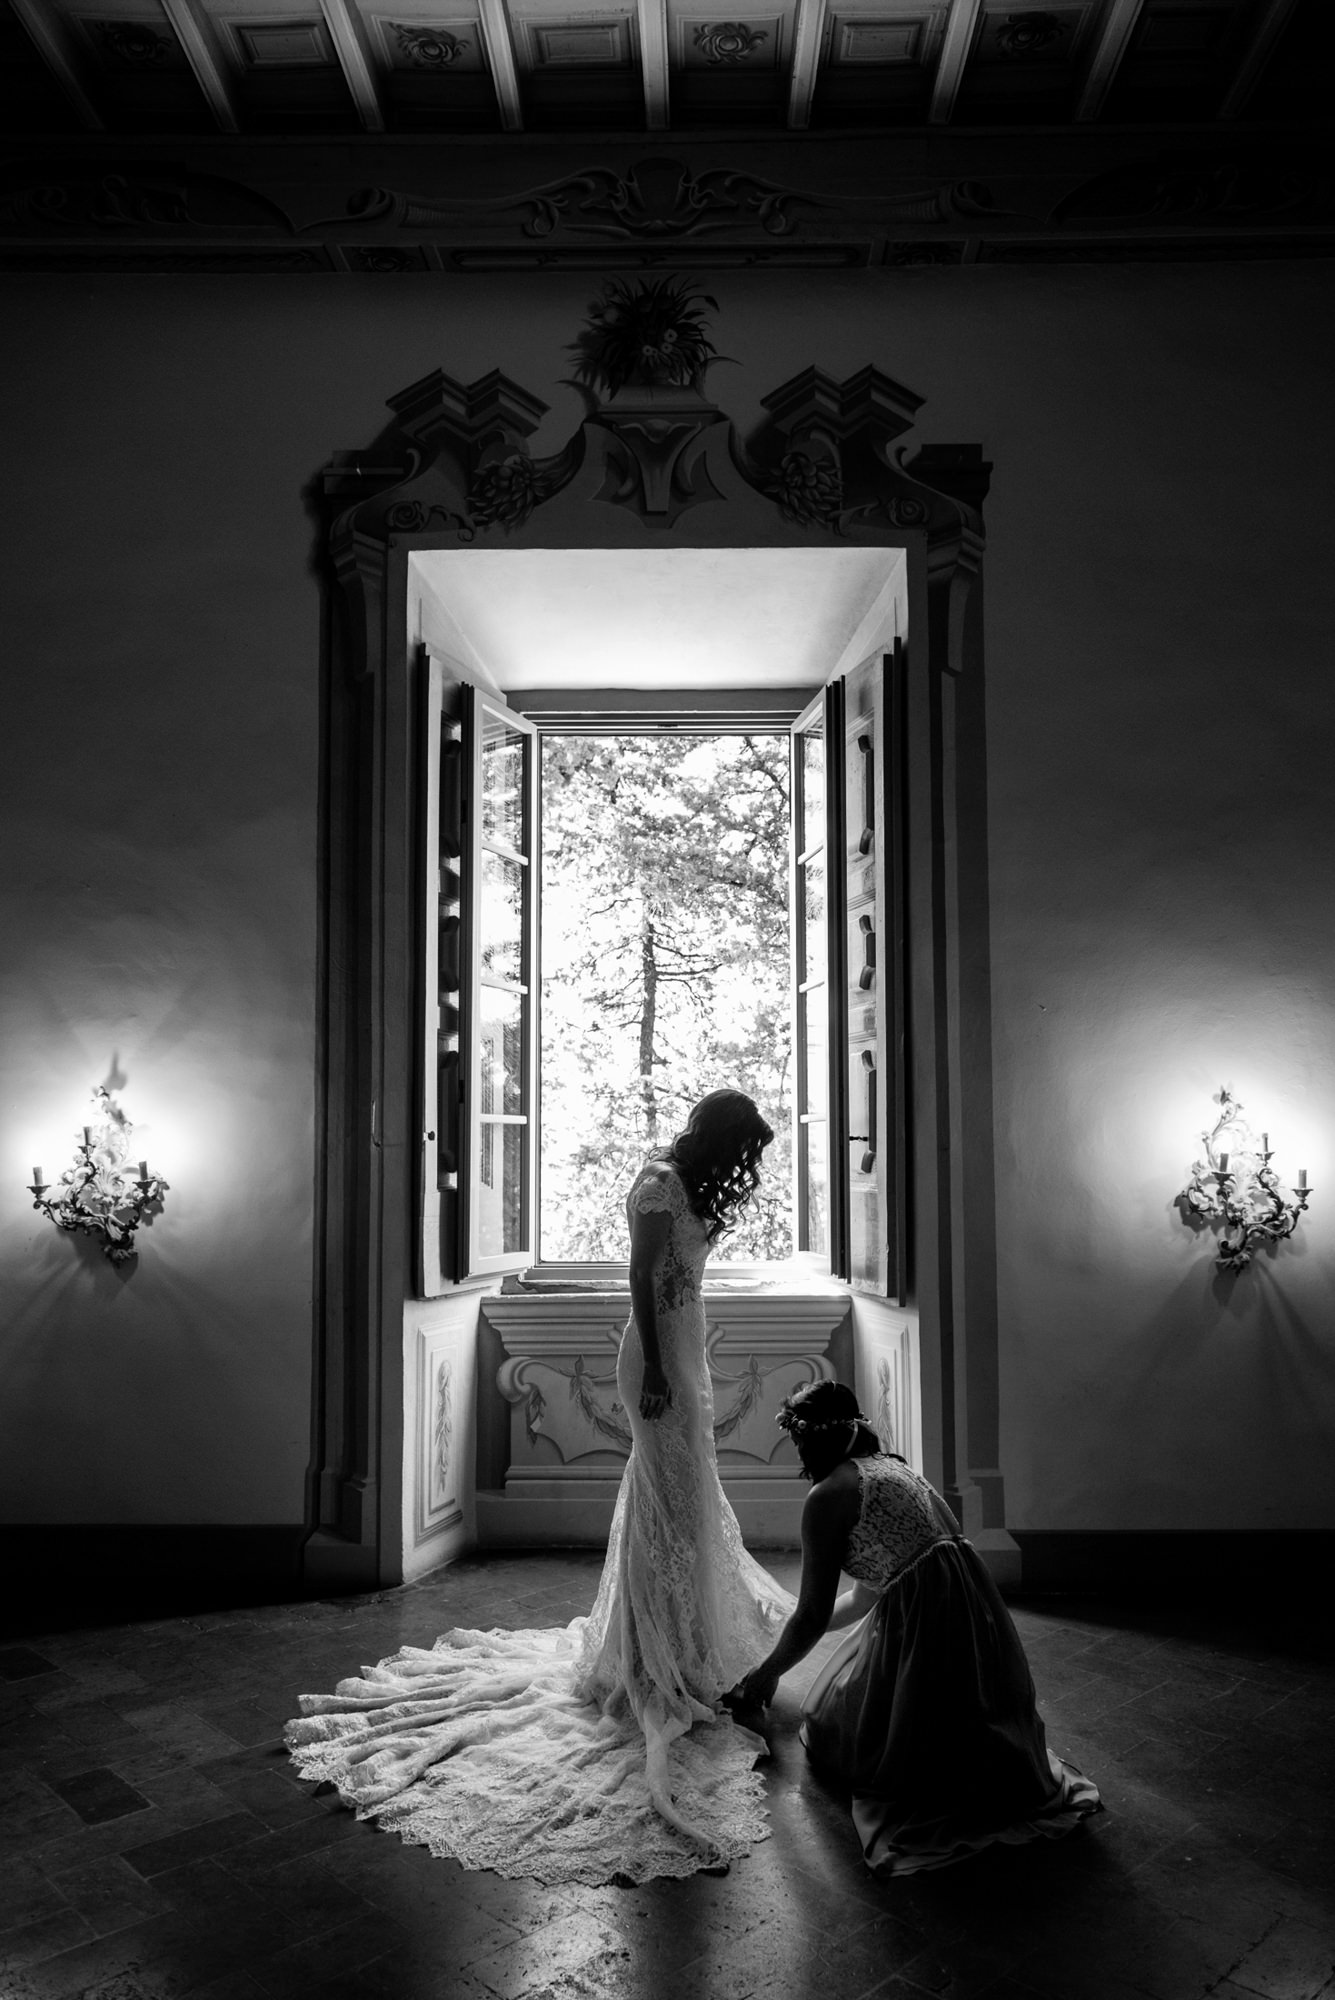 Silhouette bride in lace gown - Morgan Lynn Photography